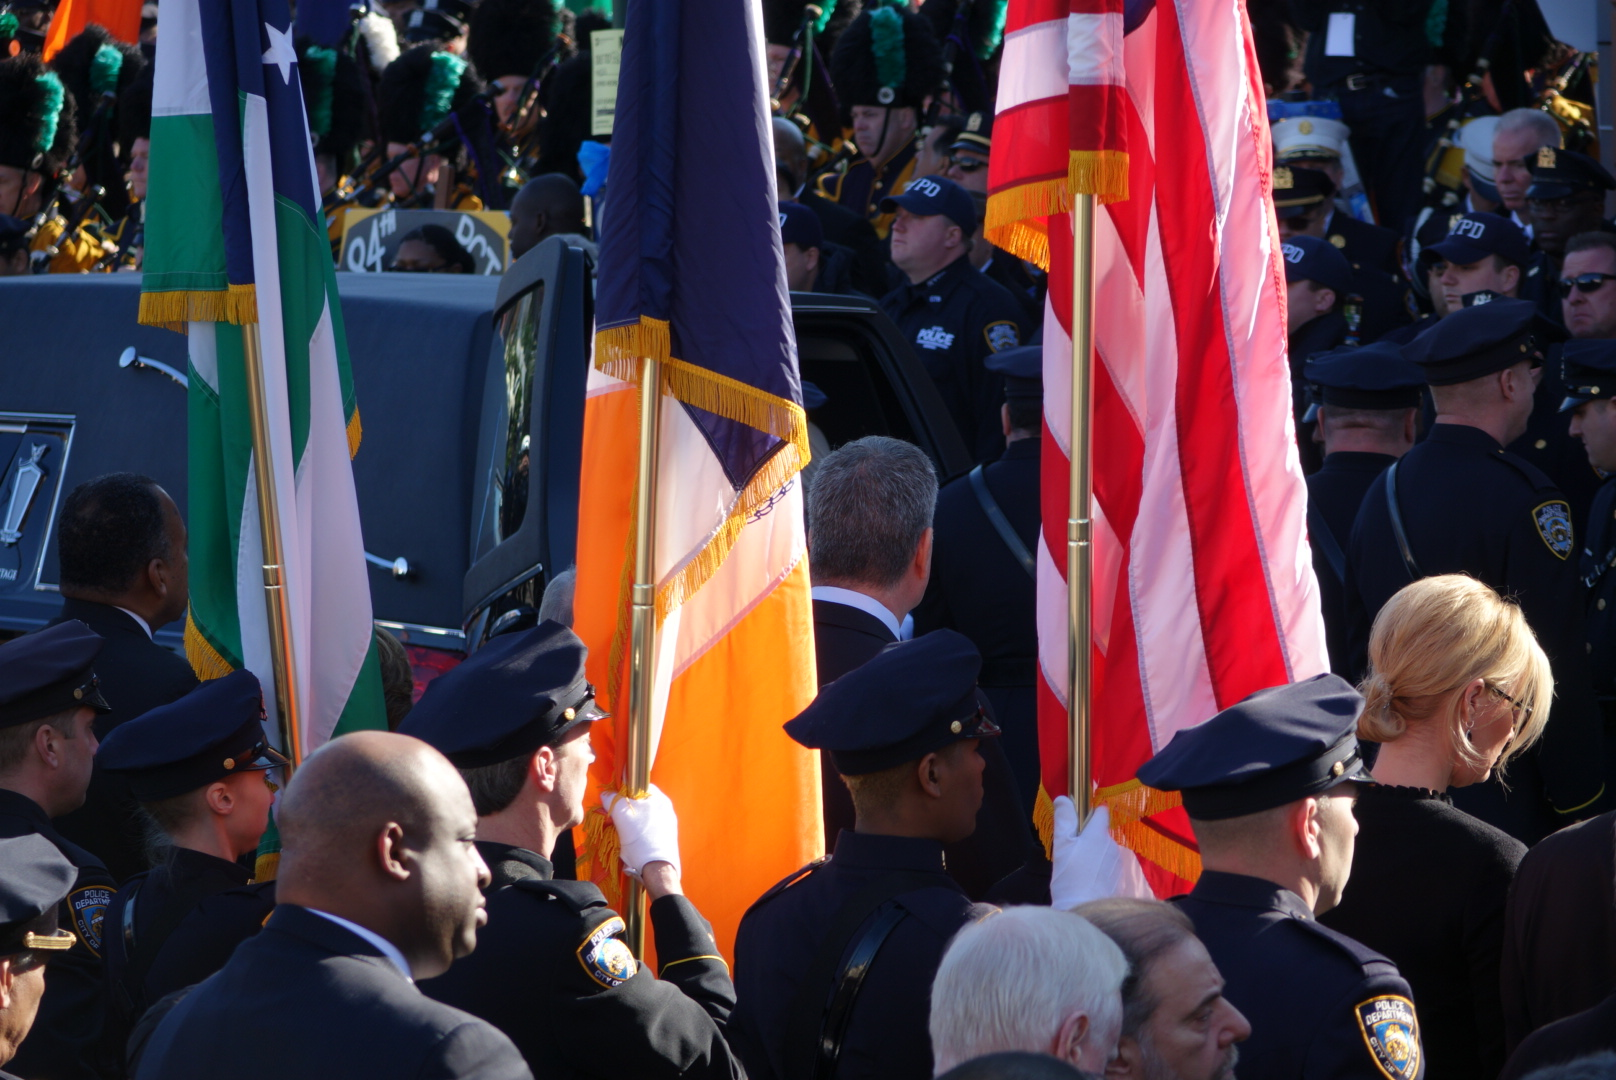 Mayor de Blasio watches as Det. Ramos' casket is place in the hearse.